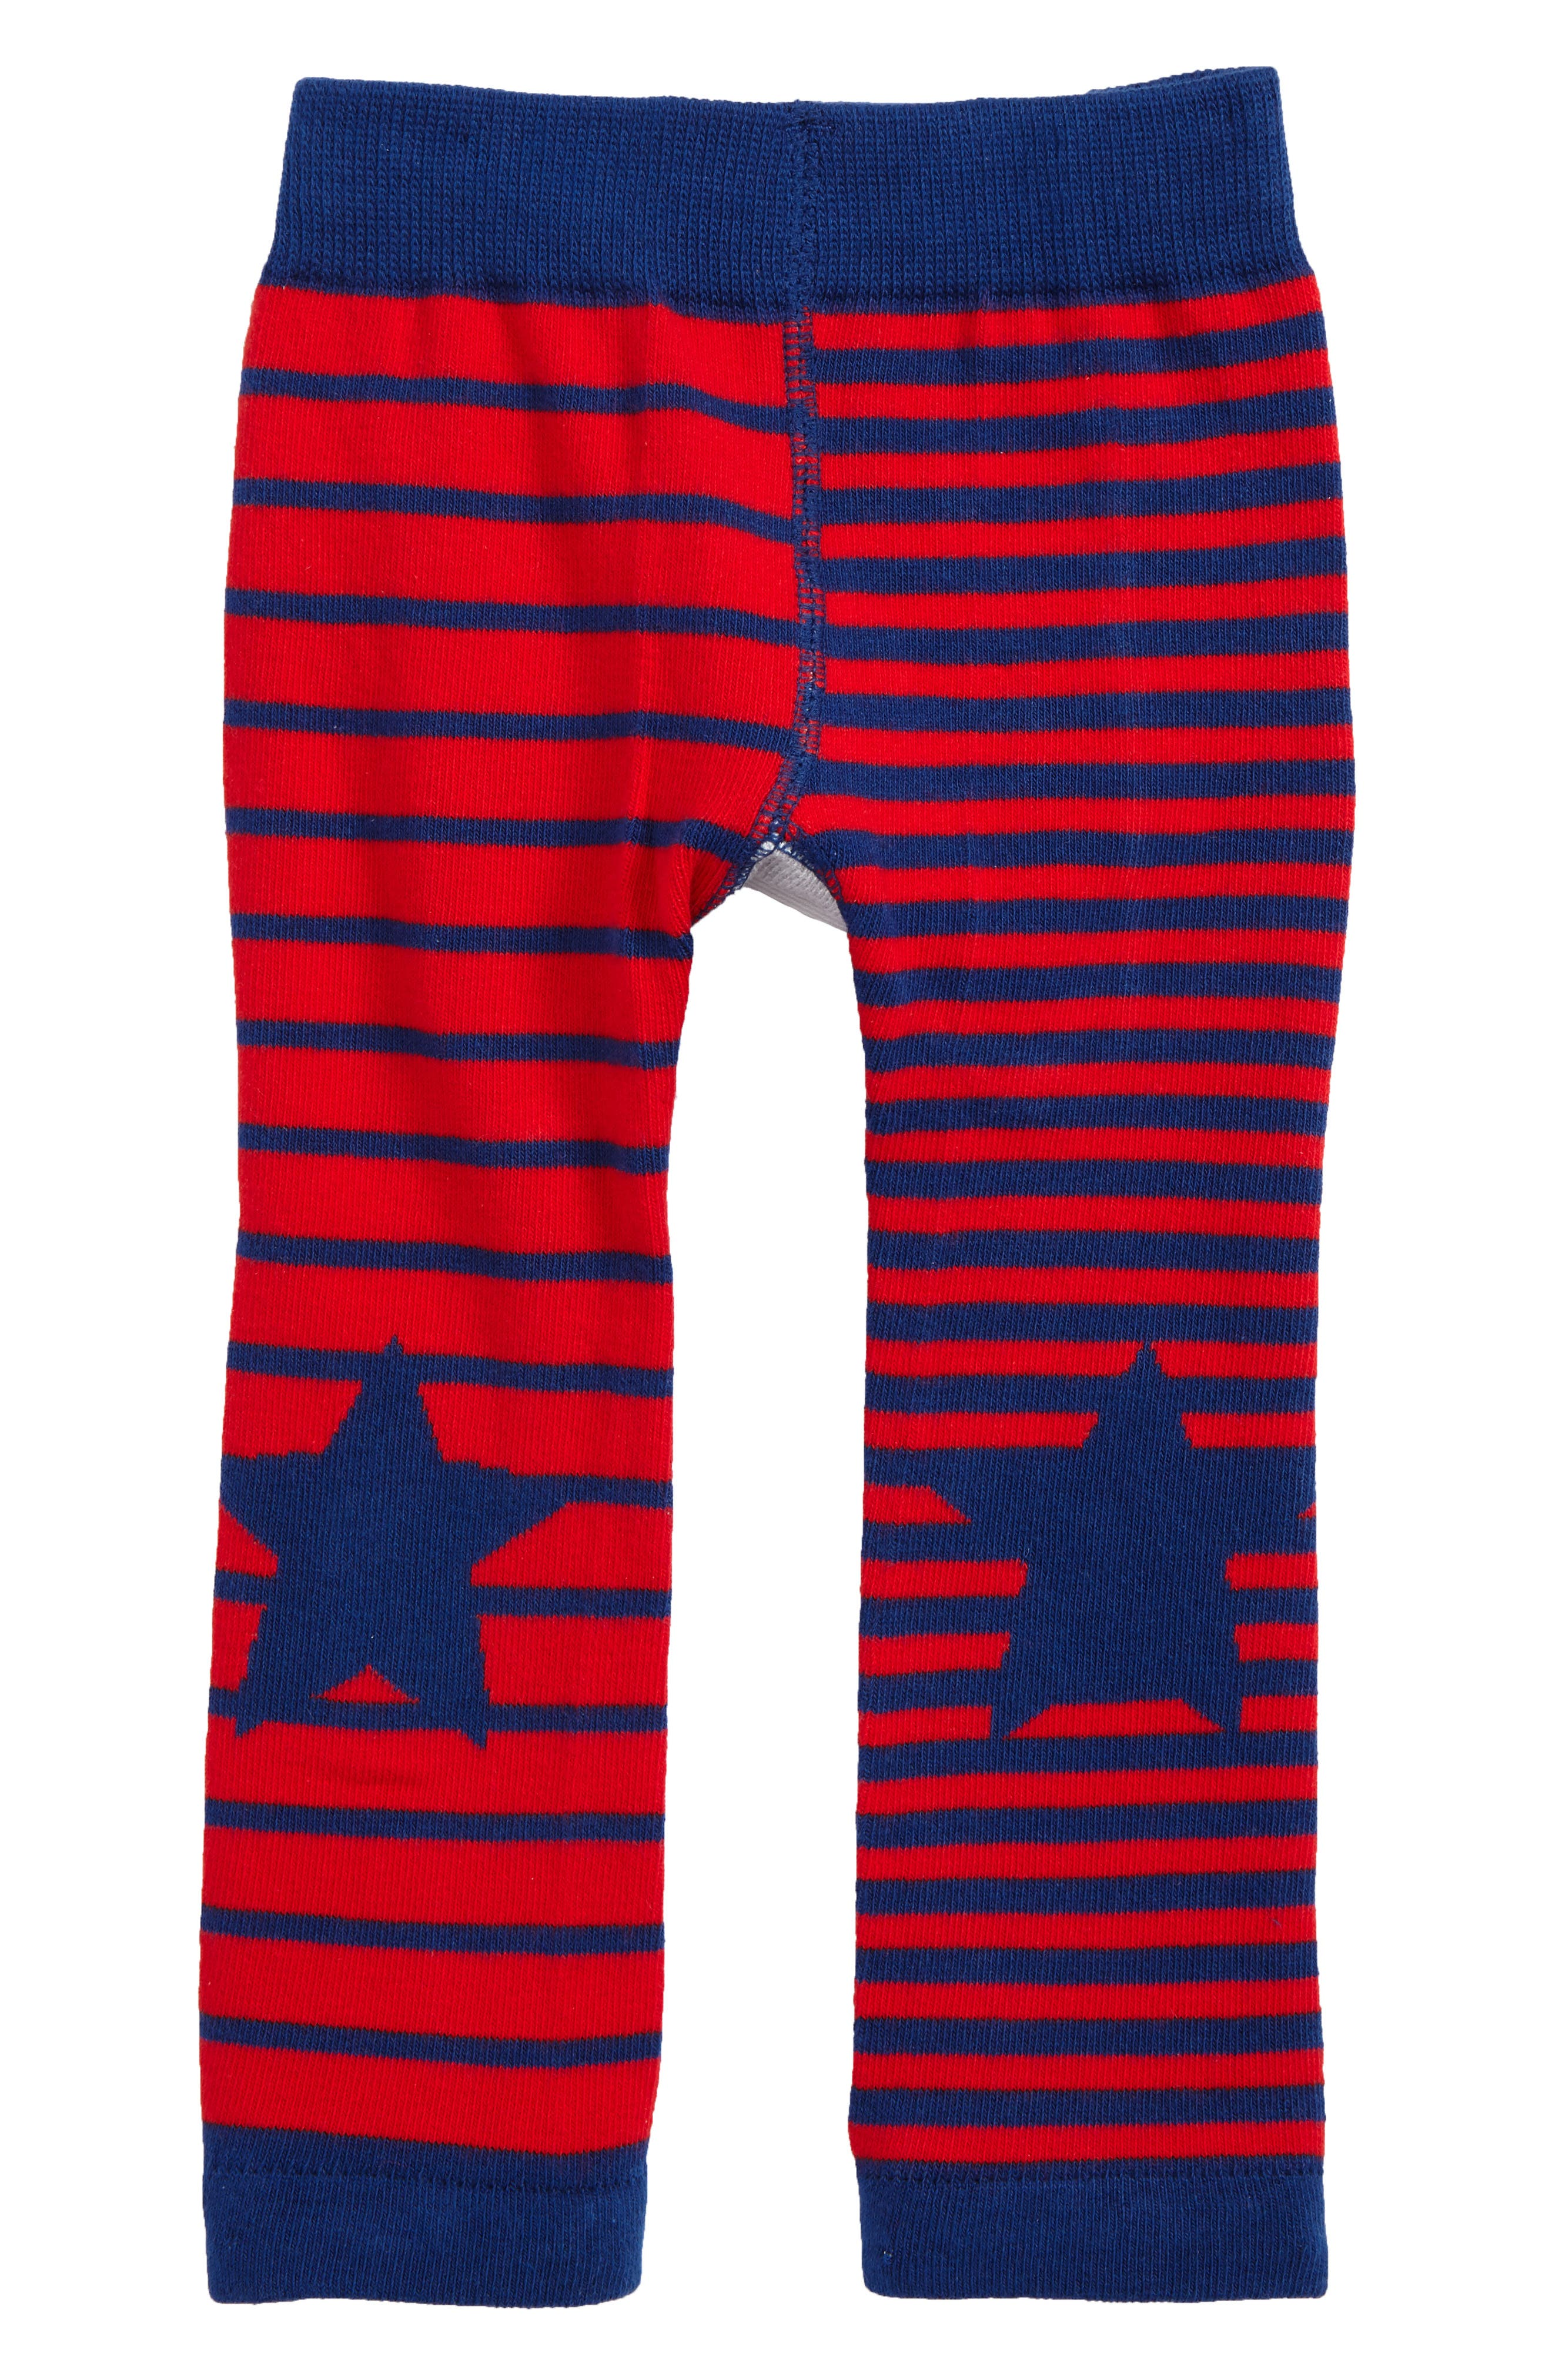 Classic Car Leggings,                             Alternate thumbnail 2, color,                             Red/ Navy Blue